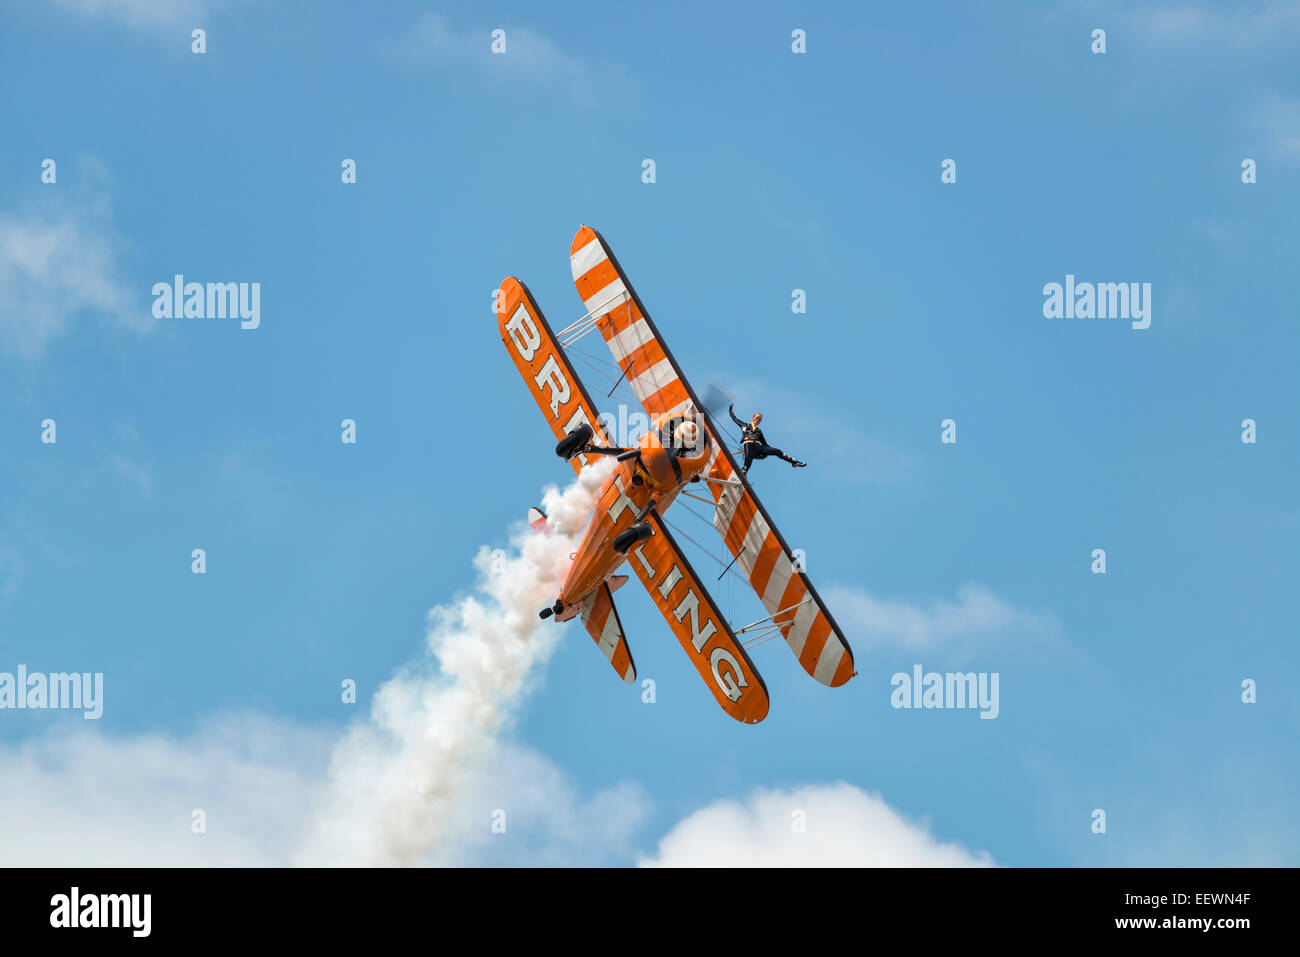 Boeing Stearman Biplane from the AeroSuperBatics Breitling Wingwalking Team makes a pass at the RAF Fairford RIAT - Stock Image